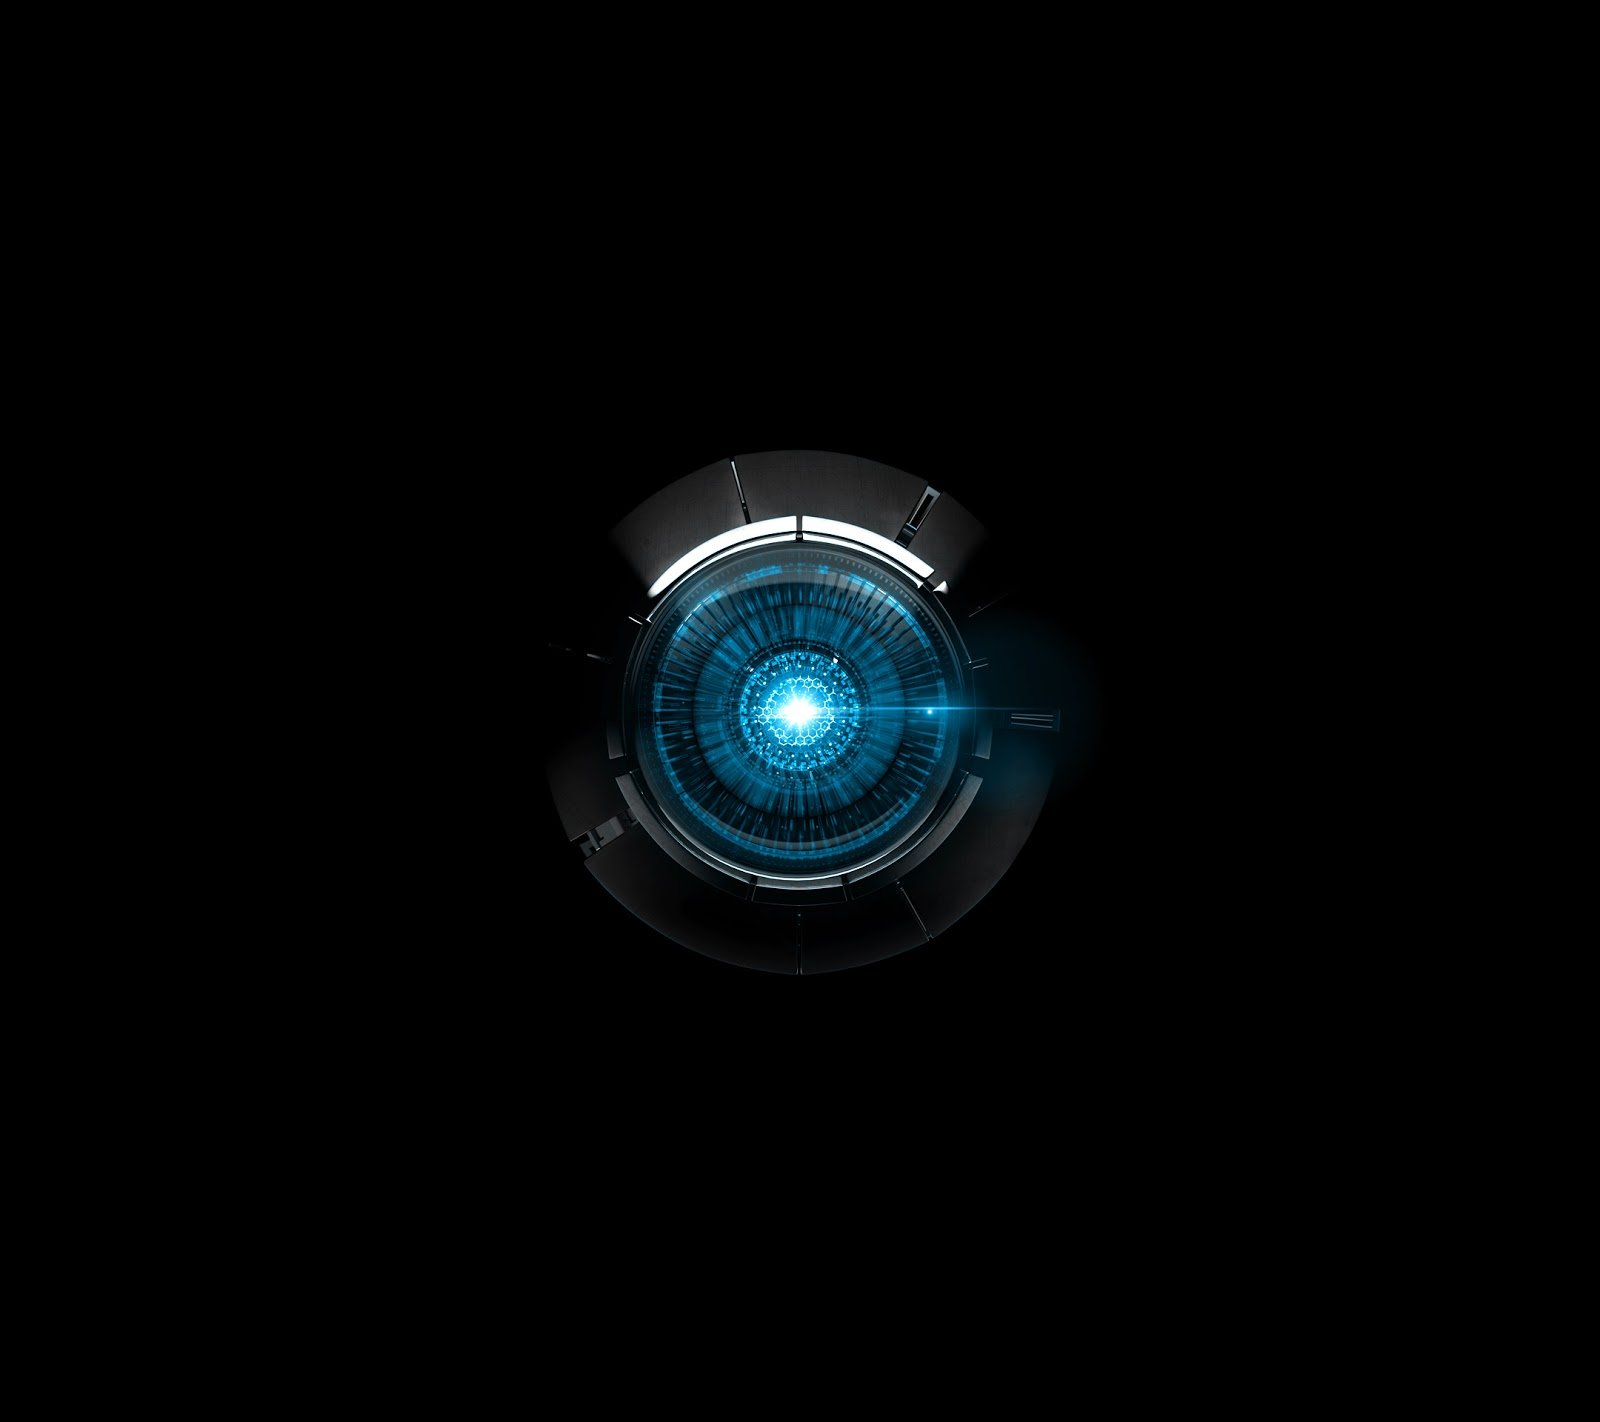 http://1.bp.blogspot.com/-ba7bzUECErk/ULNSMlCJdBI/AAAAAAAAHOo/fAisJZhBgd0/s1600/HTC+Droid+DNA+Blue+Eye+Wallpaper.jpg